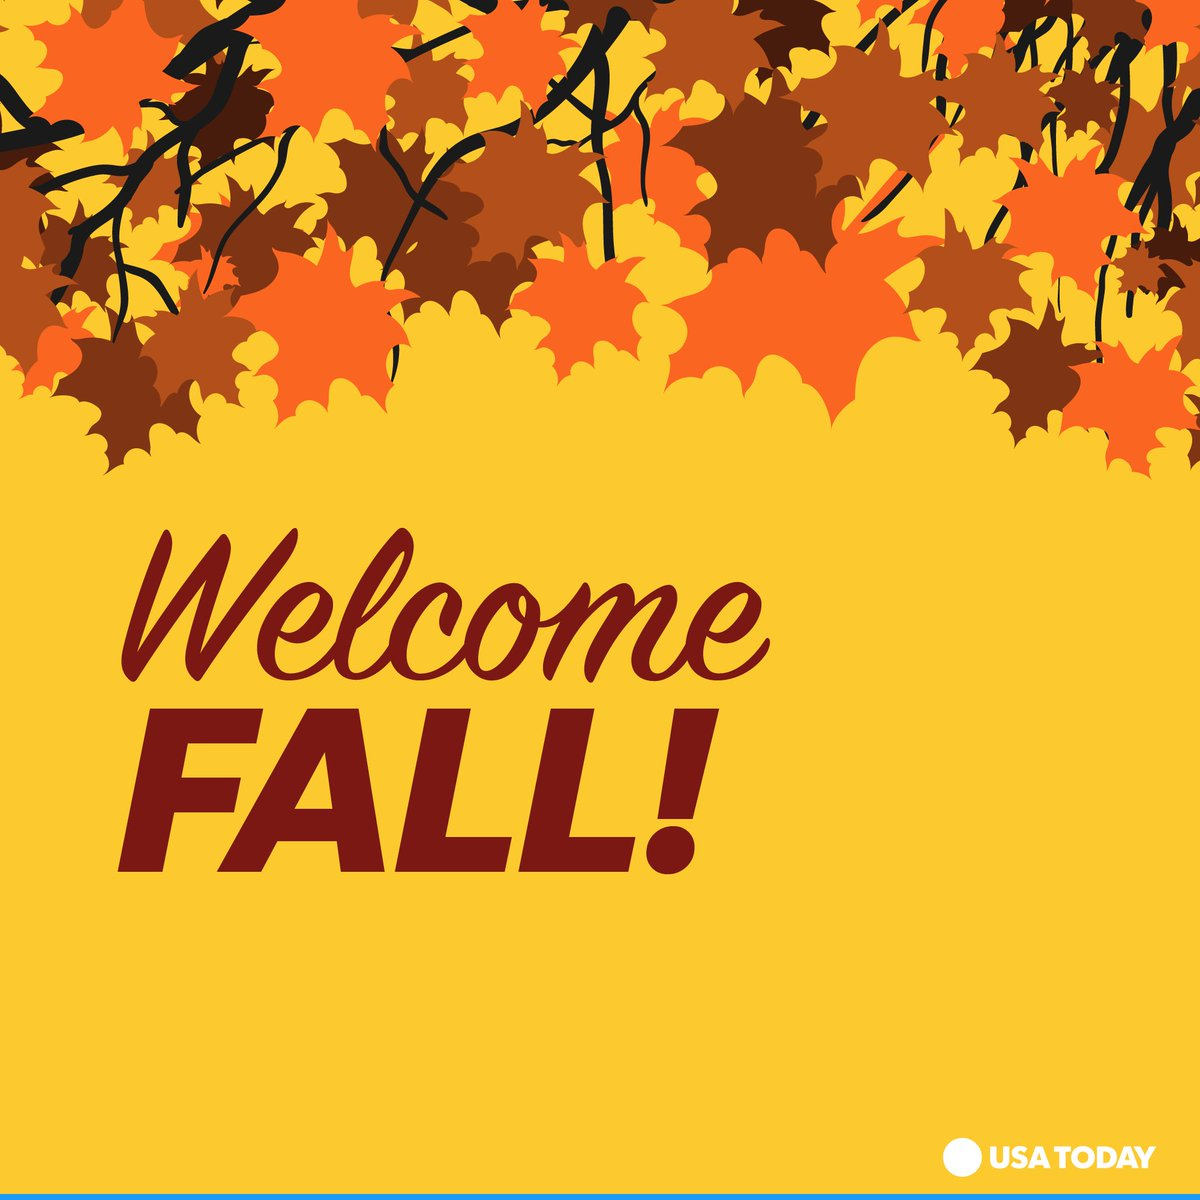 Break out the pumpkins, colorful leaves and crisp walks. #FirstDayofFall #AutumnEquinox